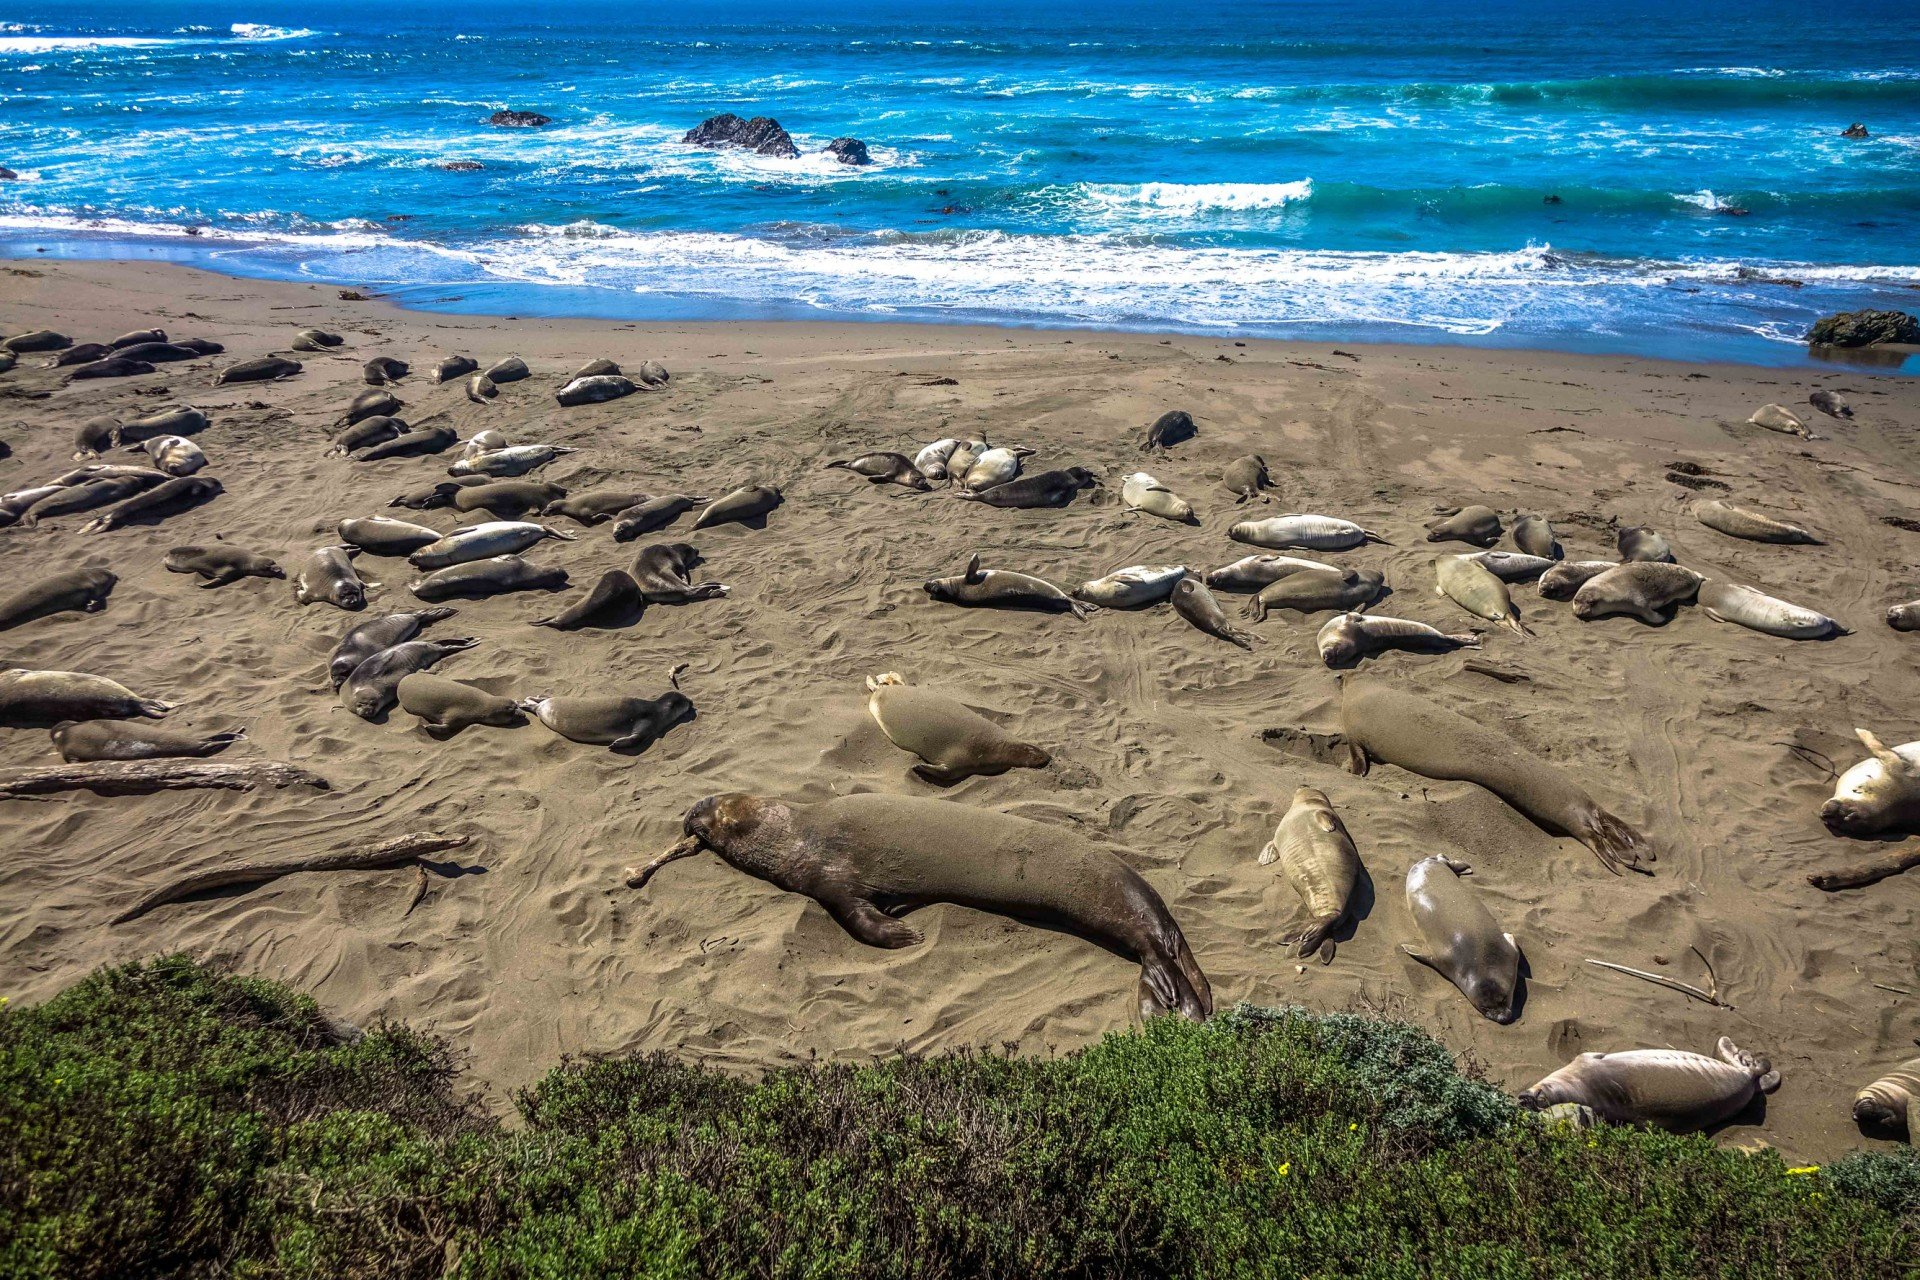 Elephant Seals in California 2020 - Best Time